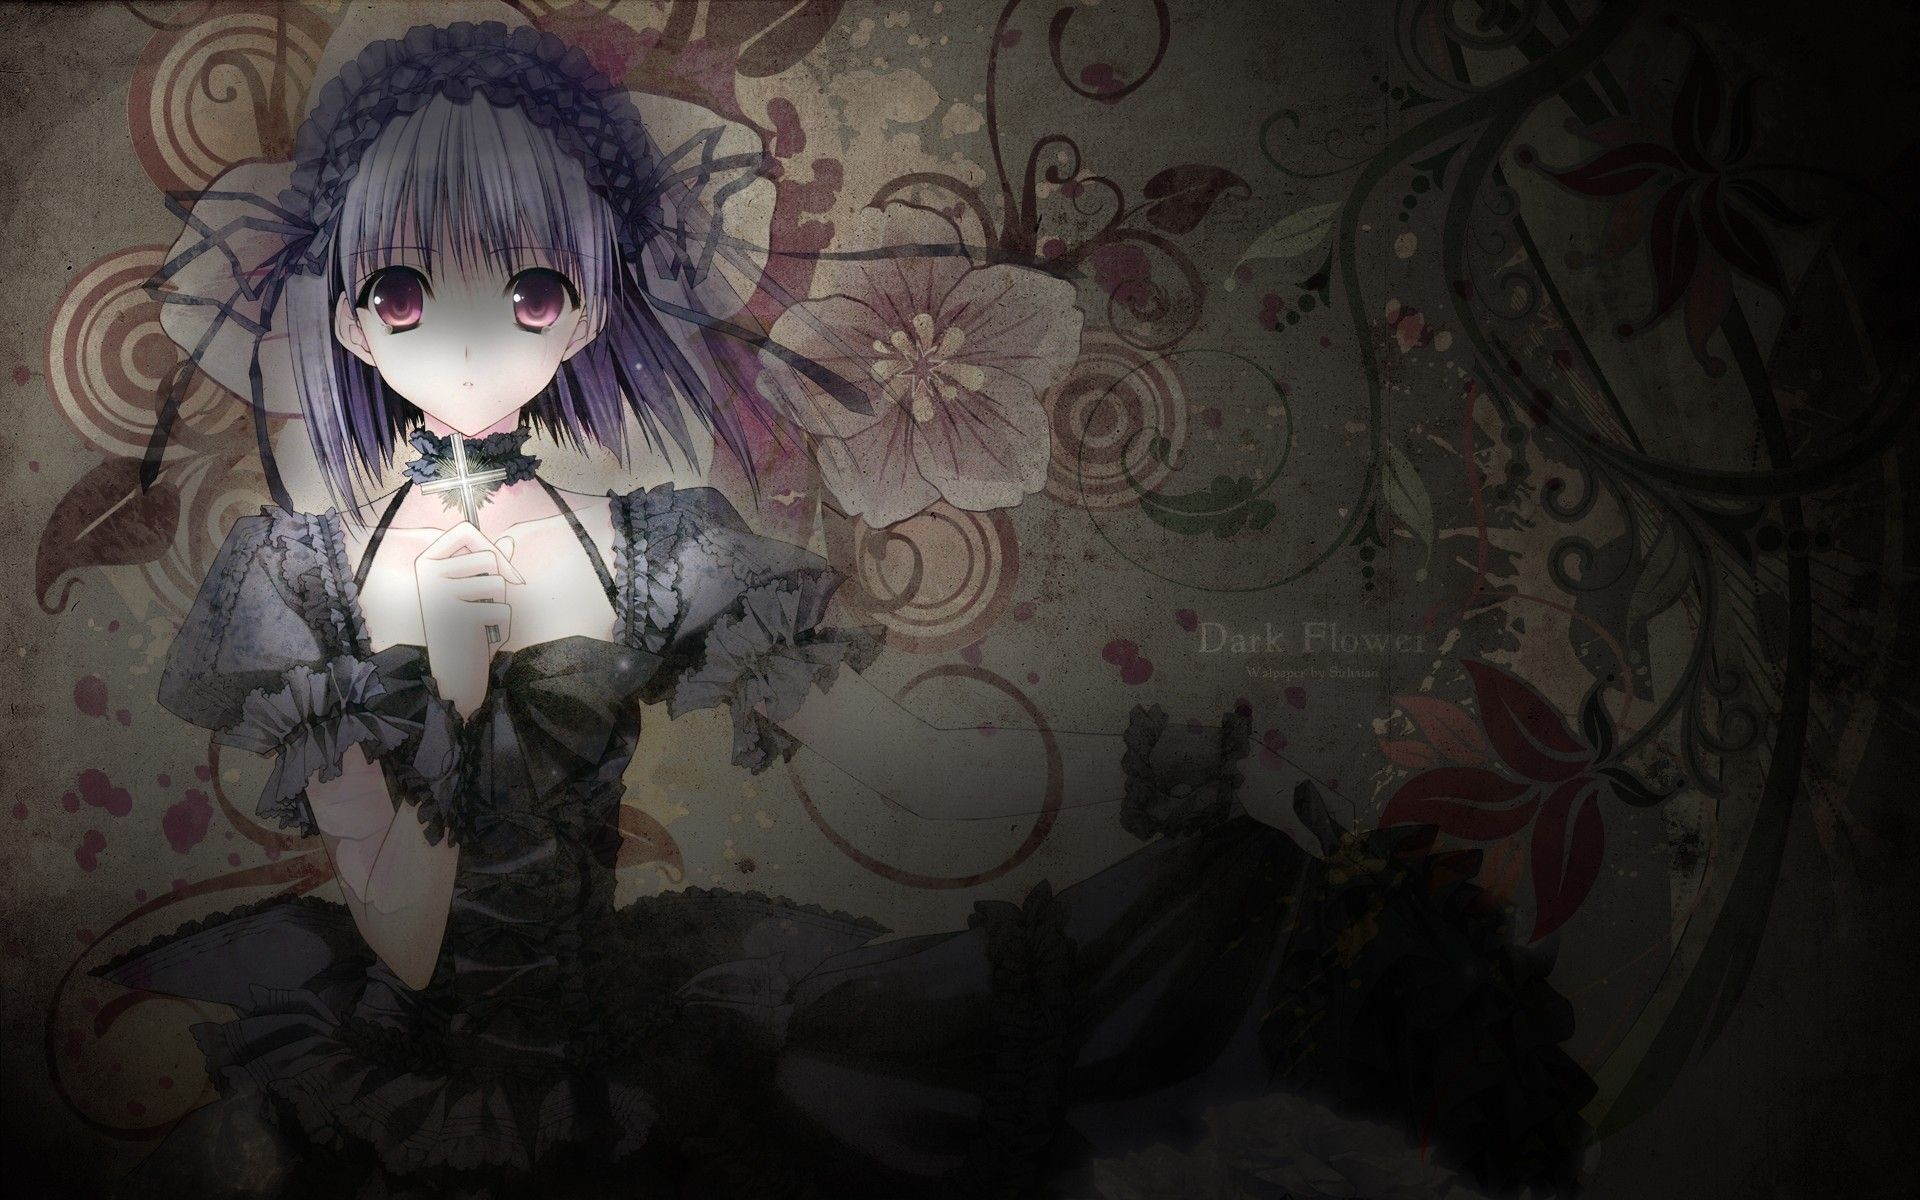 Anime Zombie Girl Wallpapers - Top Free Anime Zombie Girl